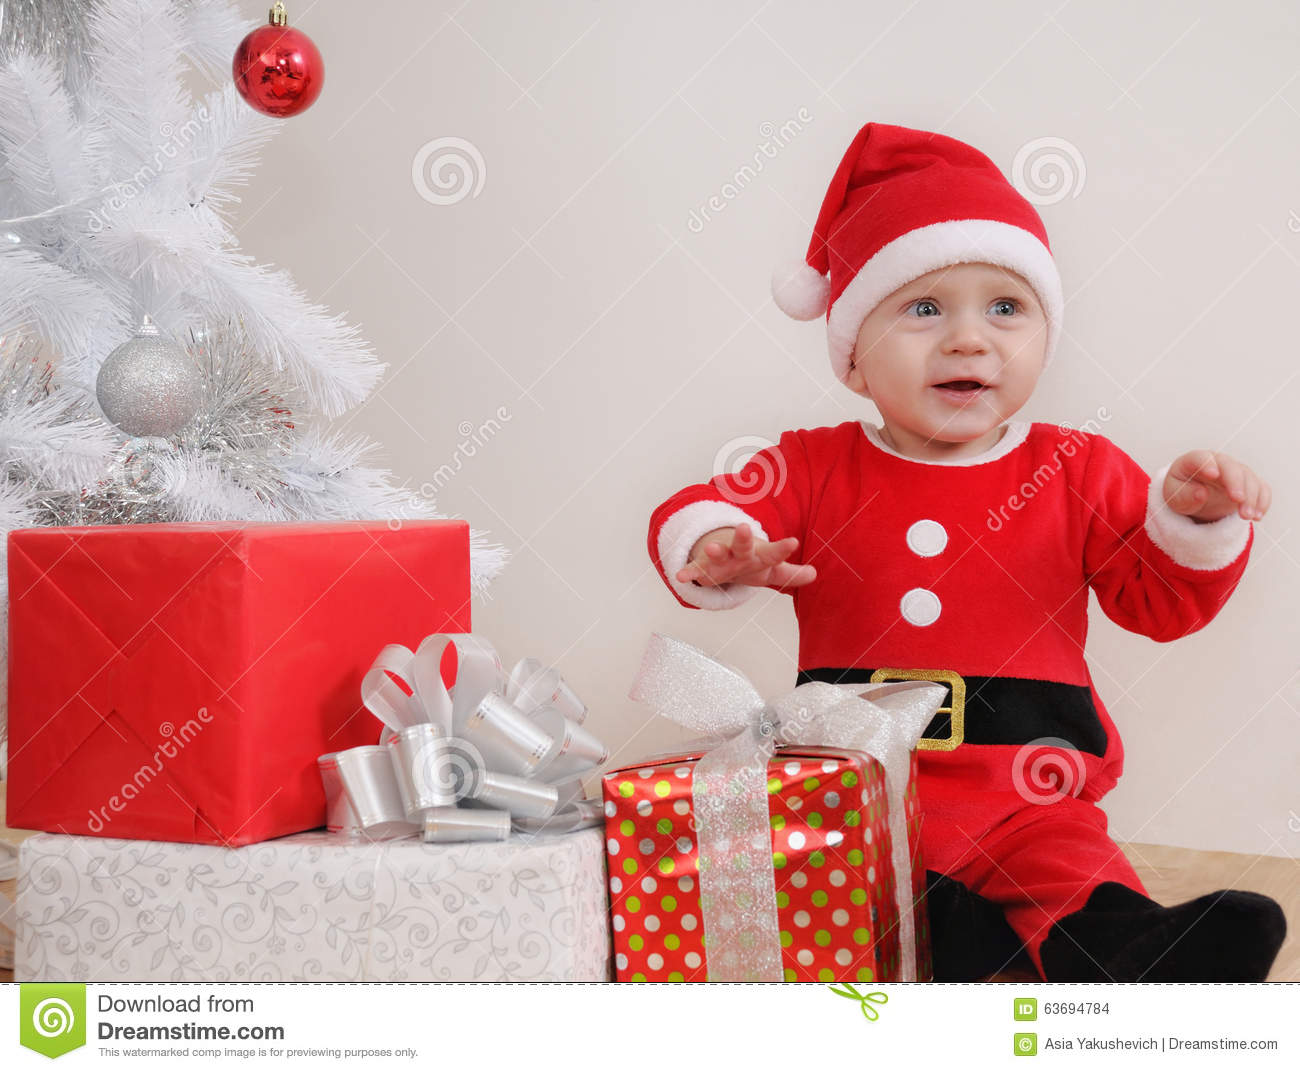 Cute Baby Gifts For Christmas : Cute happy little baby boy in santa suit with gifts near